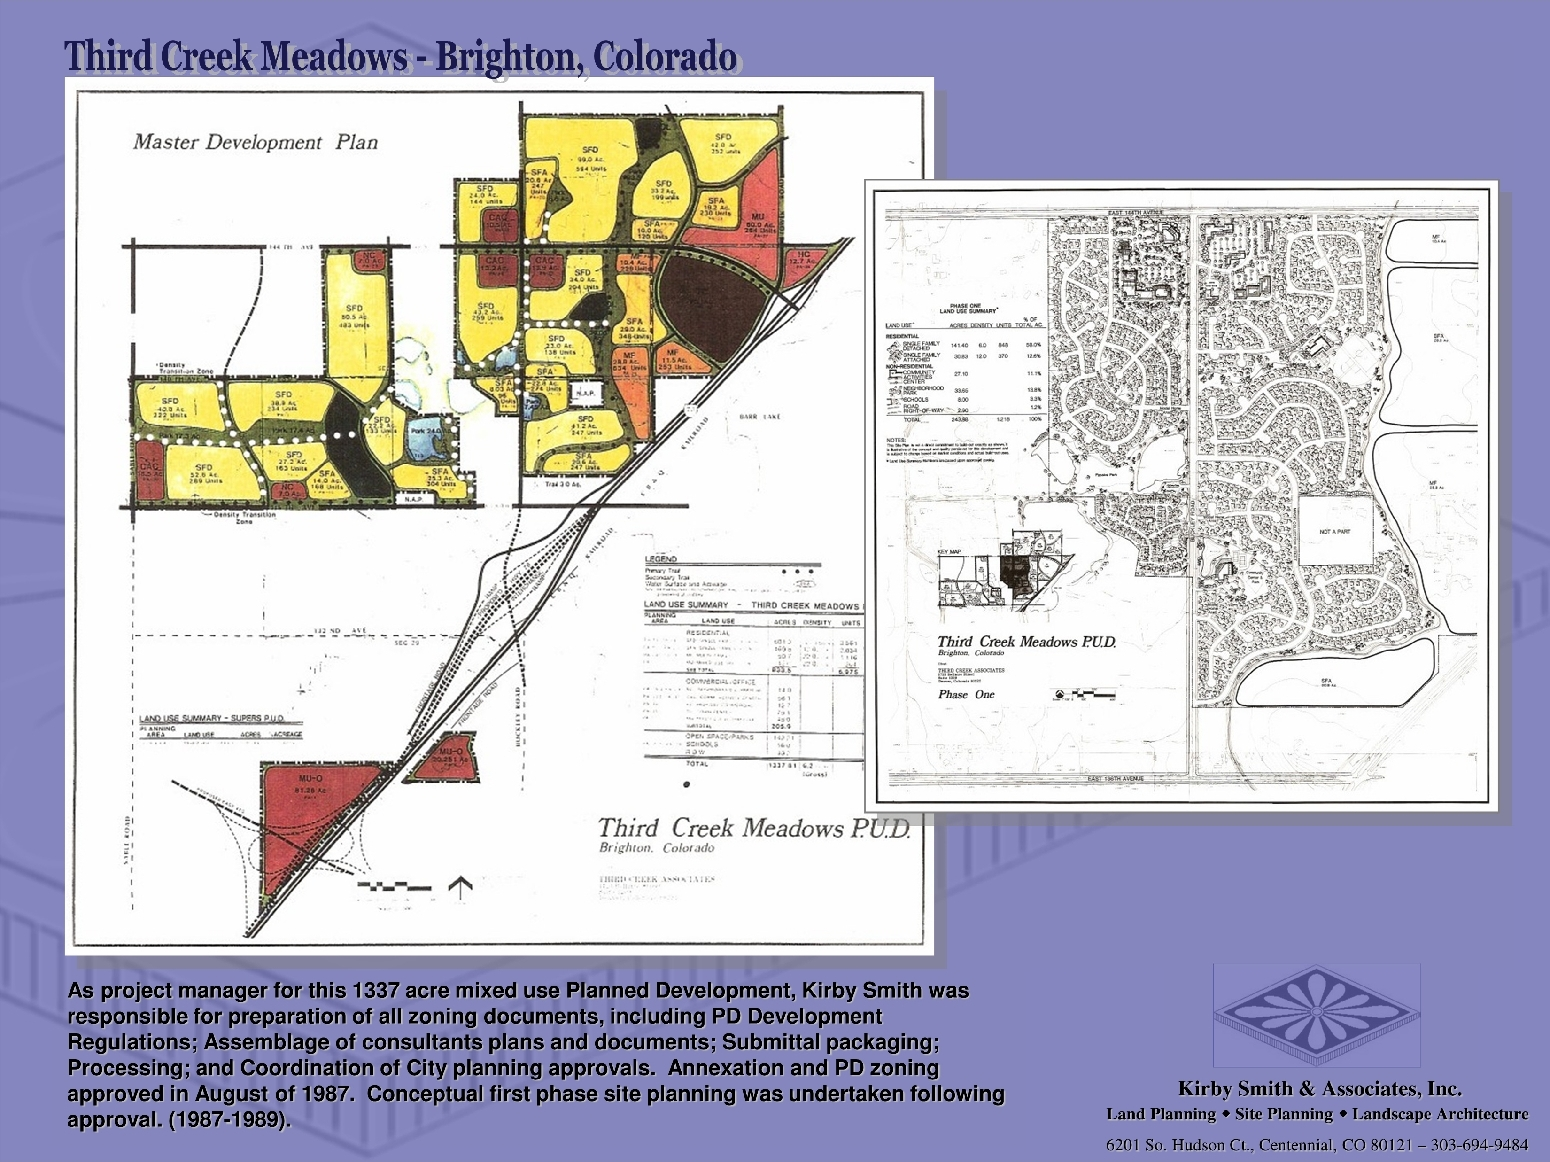 As project manager for this 1337 acre mixed use Planned Development, Kirby Smith was responsible for preparation of all zoning documents, including PD Development Regulations; Assemblage of consultants plans and documents; Submittal packaging; Processing; and Coordination of City planning approvals.  Annexation and PD zoning approved in August of 1987.  Conceptual first phase site planning was undertaken following approval. (1987-1989).